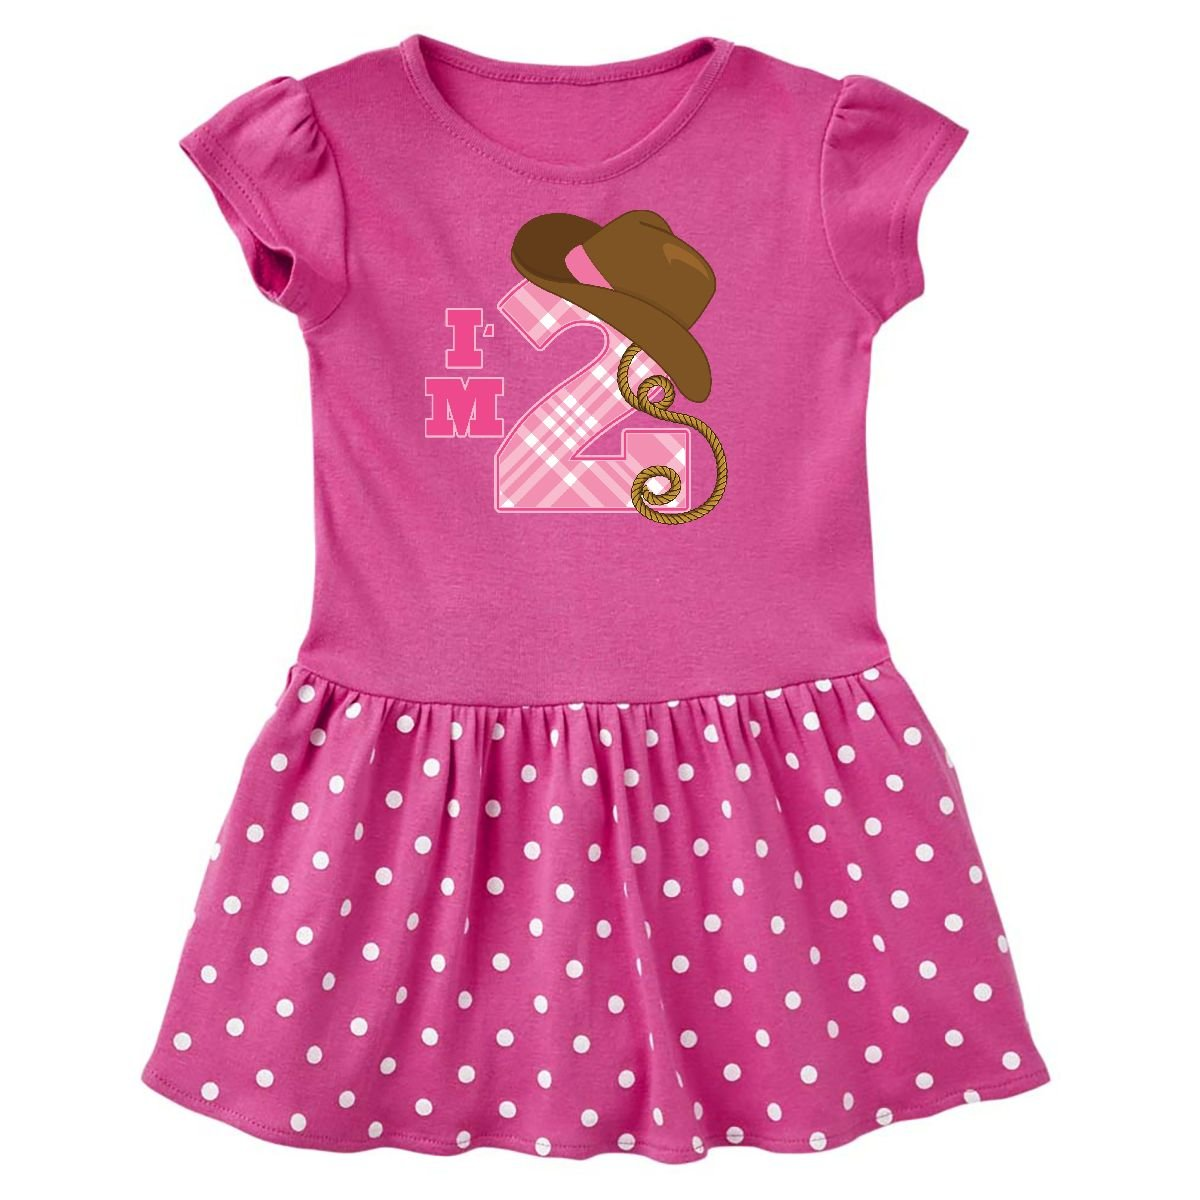 inktastic - 2nd Birthday 2 Year Old Cowgirl Hat Toddler Dress 14-191900-198